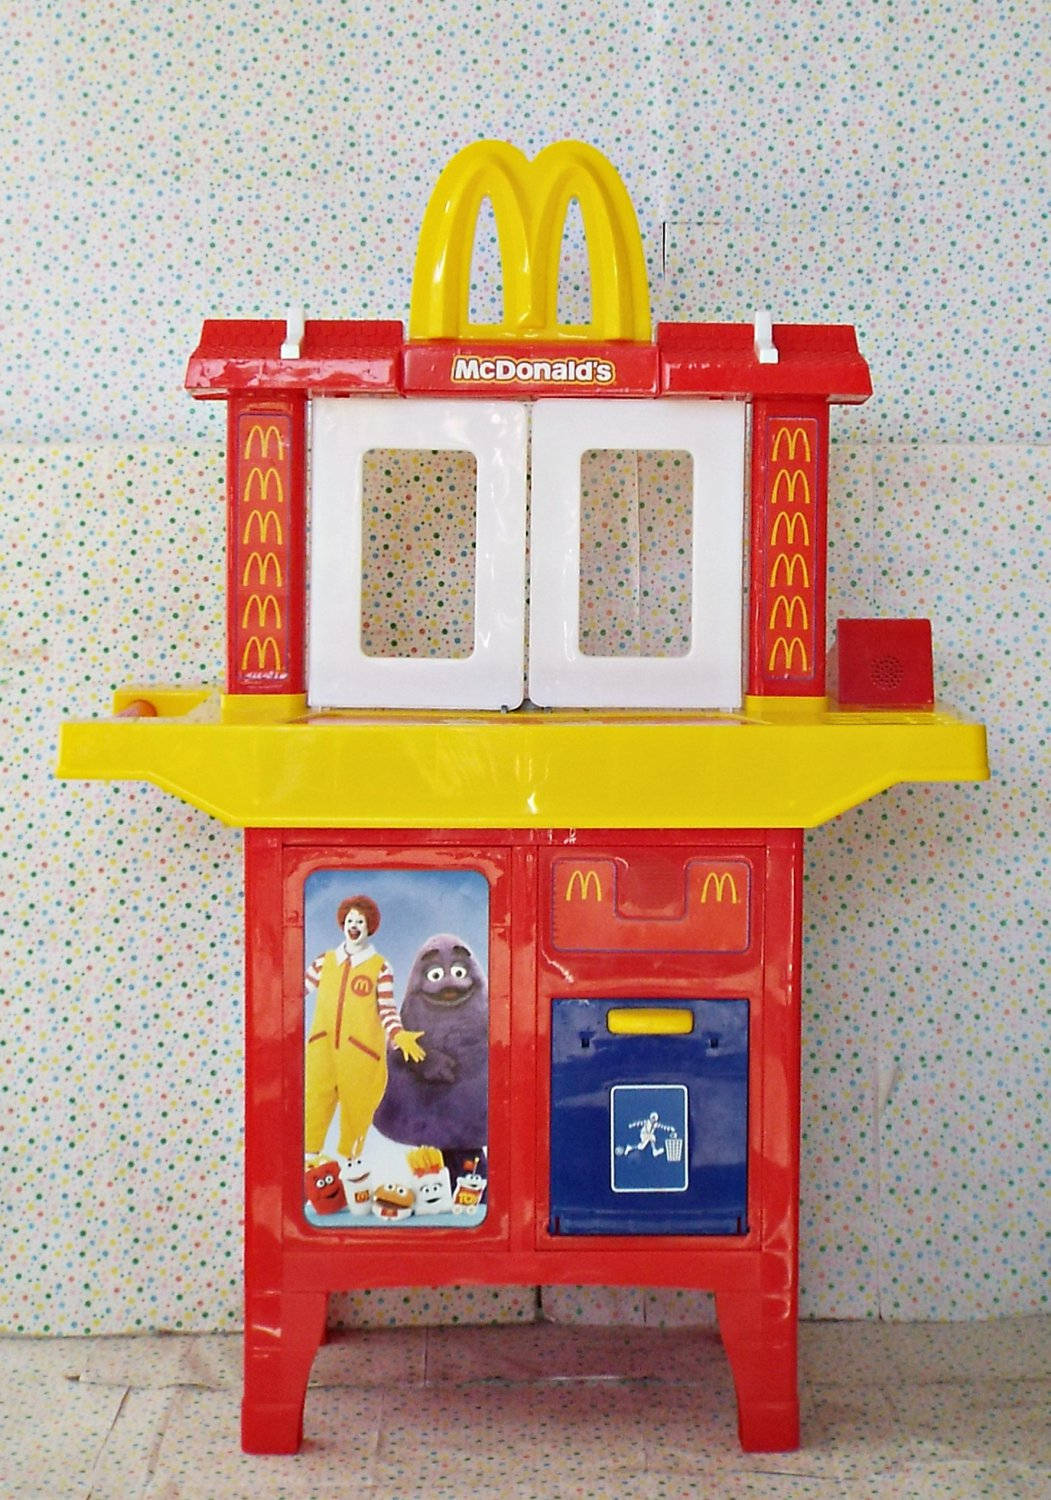 Mcdonalds Toy Kitchen Uk